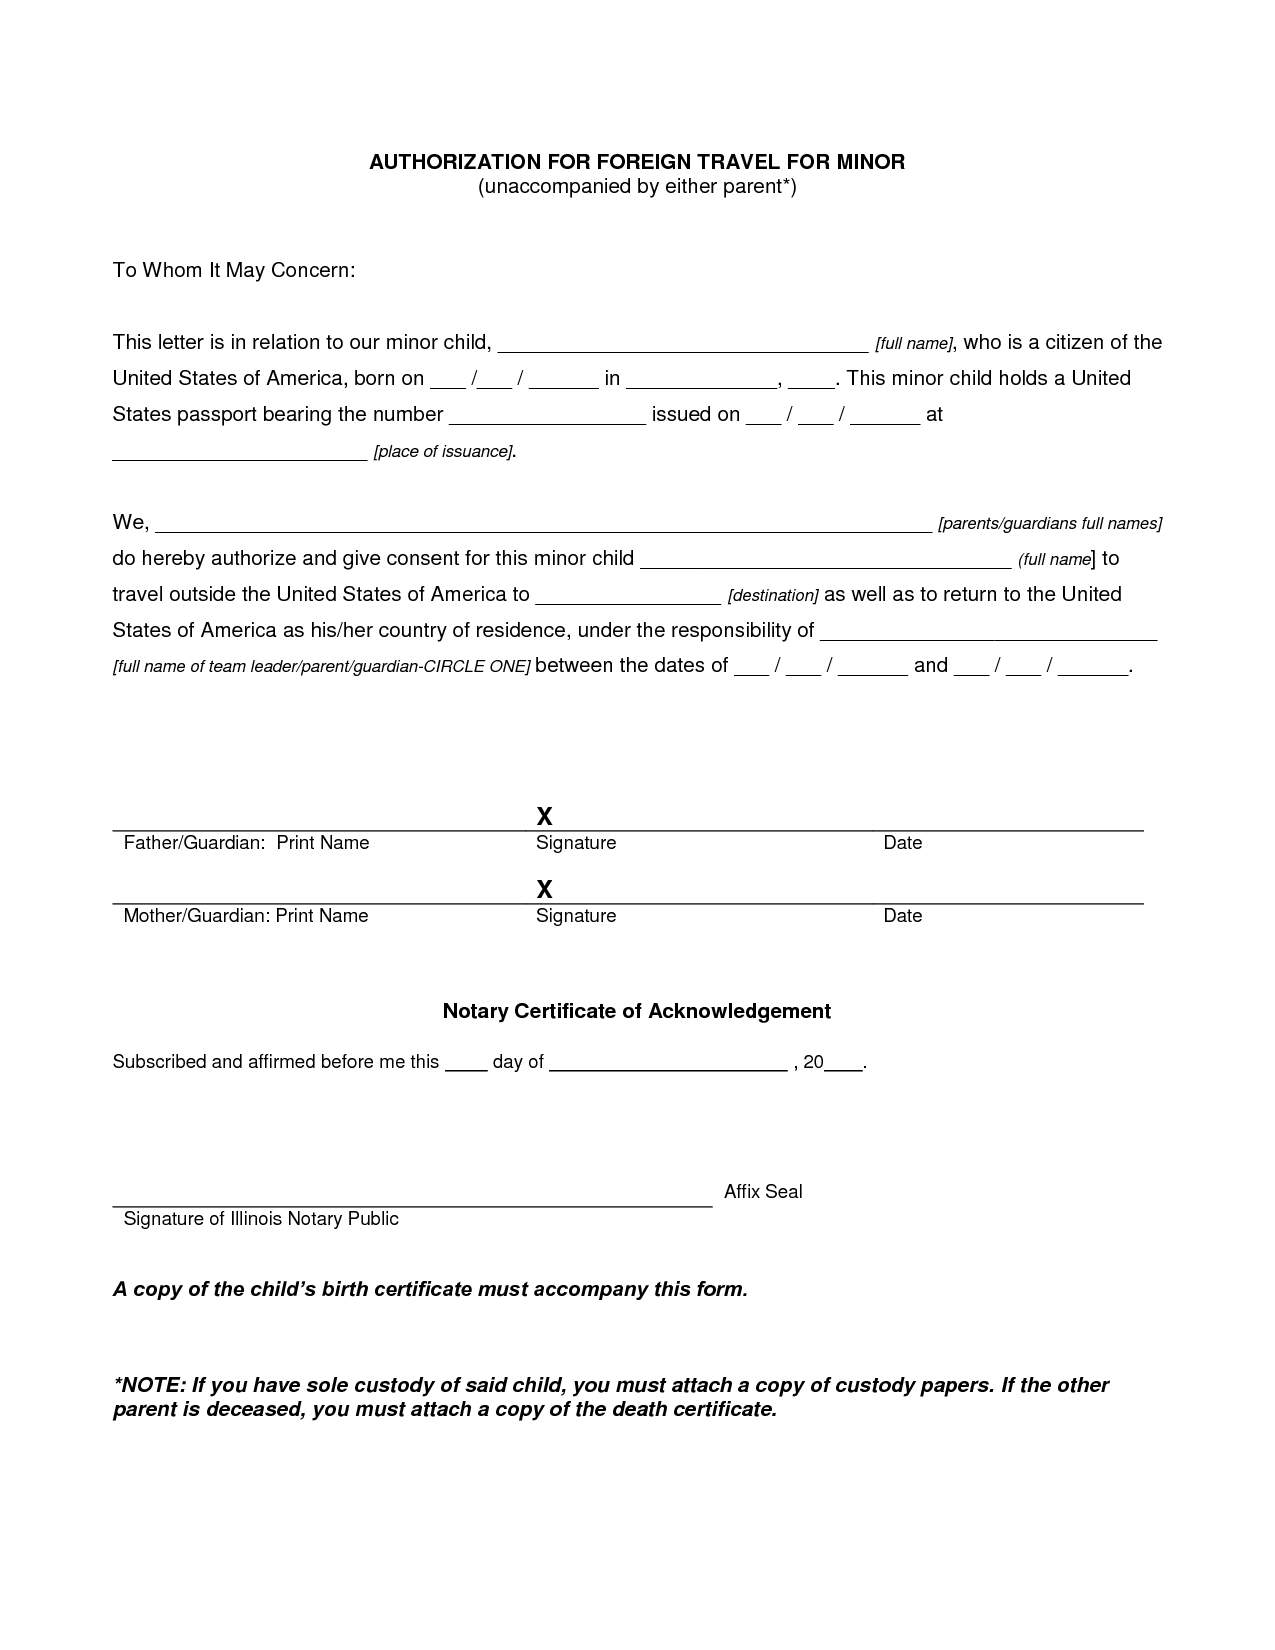 Travel Consent Form For Minor Child Traveling With One Parent Pdf